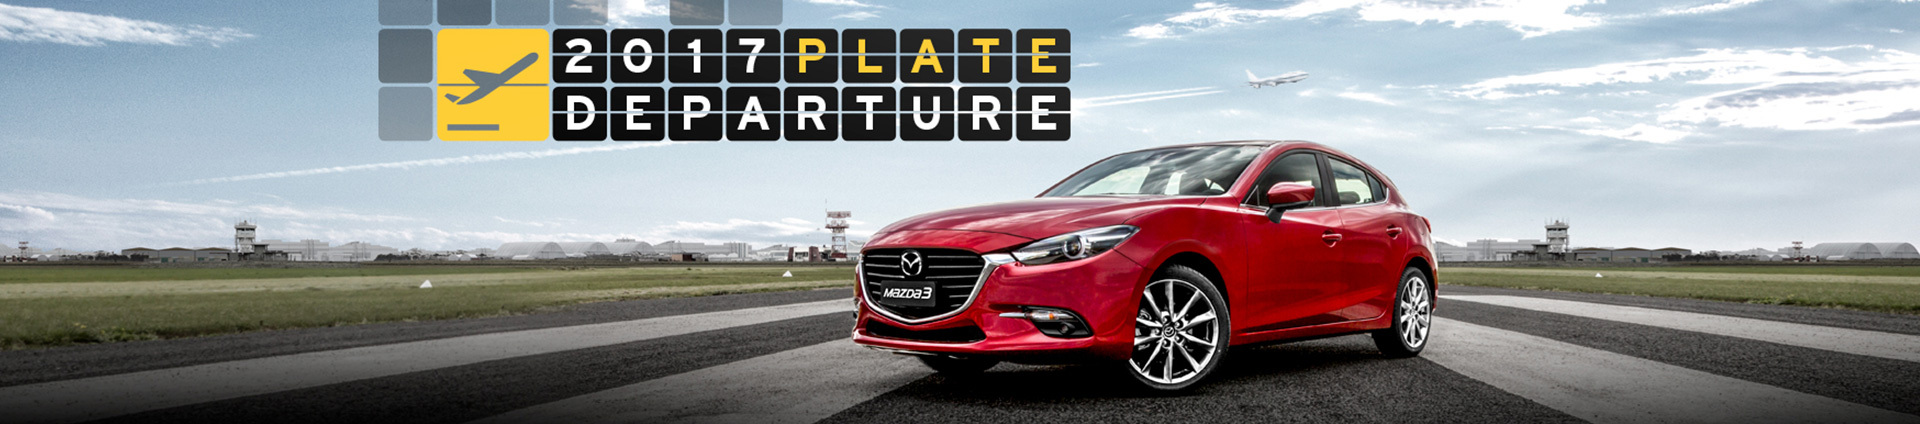 Mazda - National Offer - 2017 Plate Departure Sale